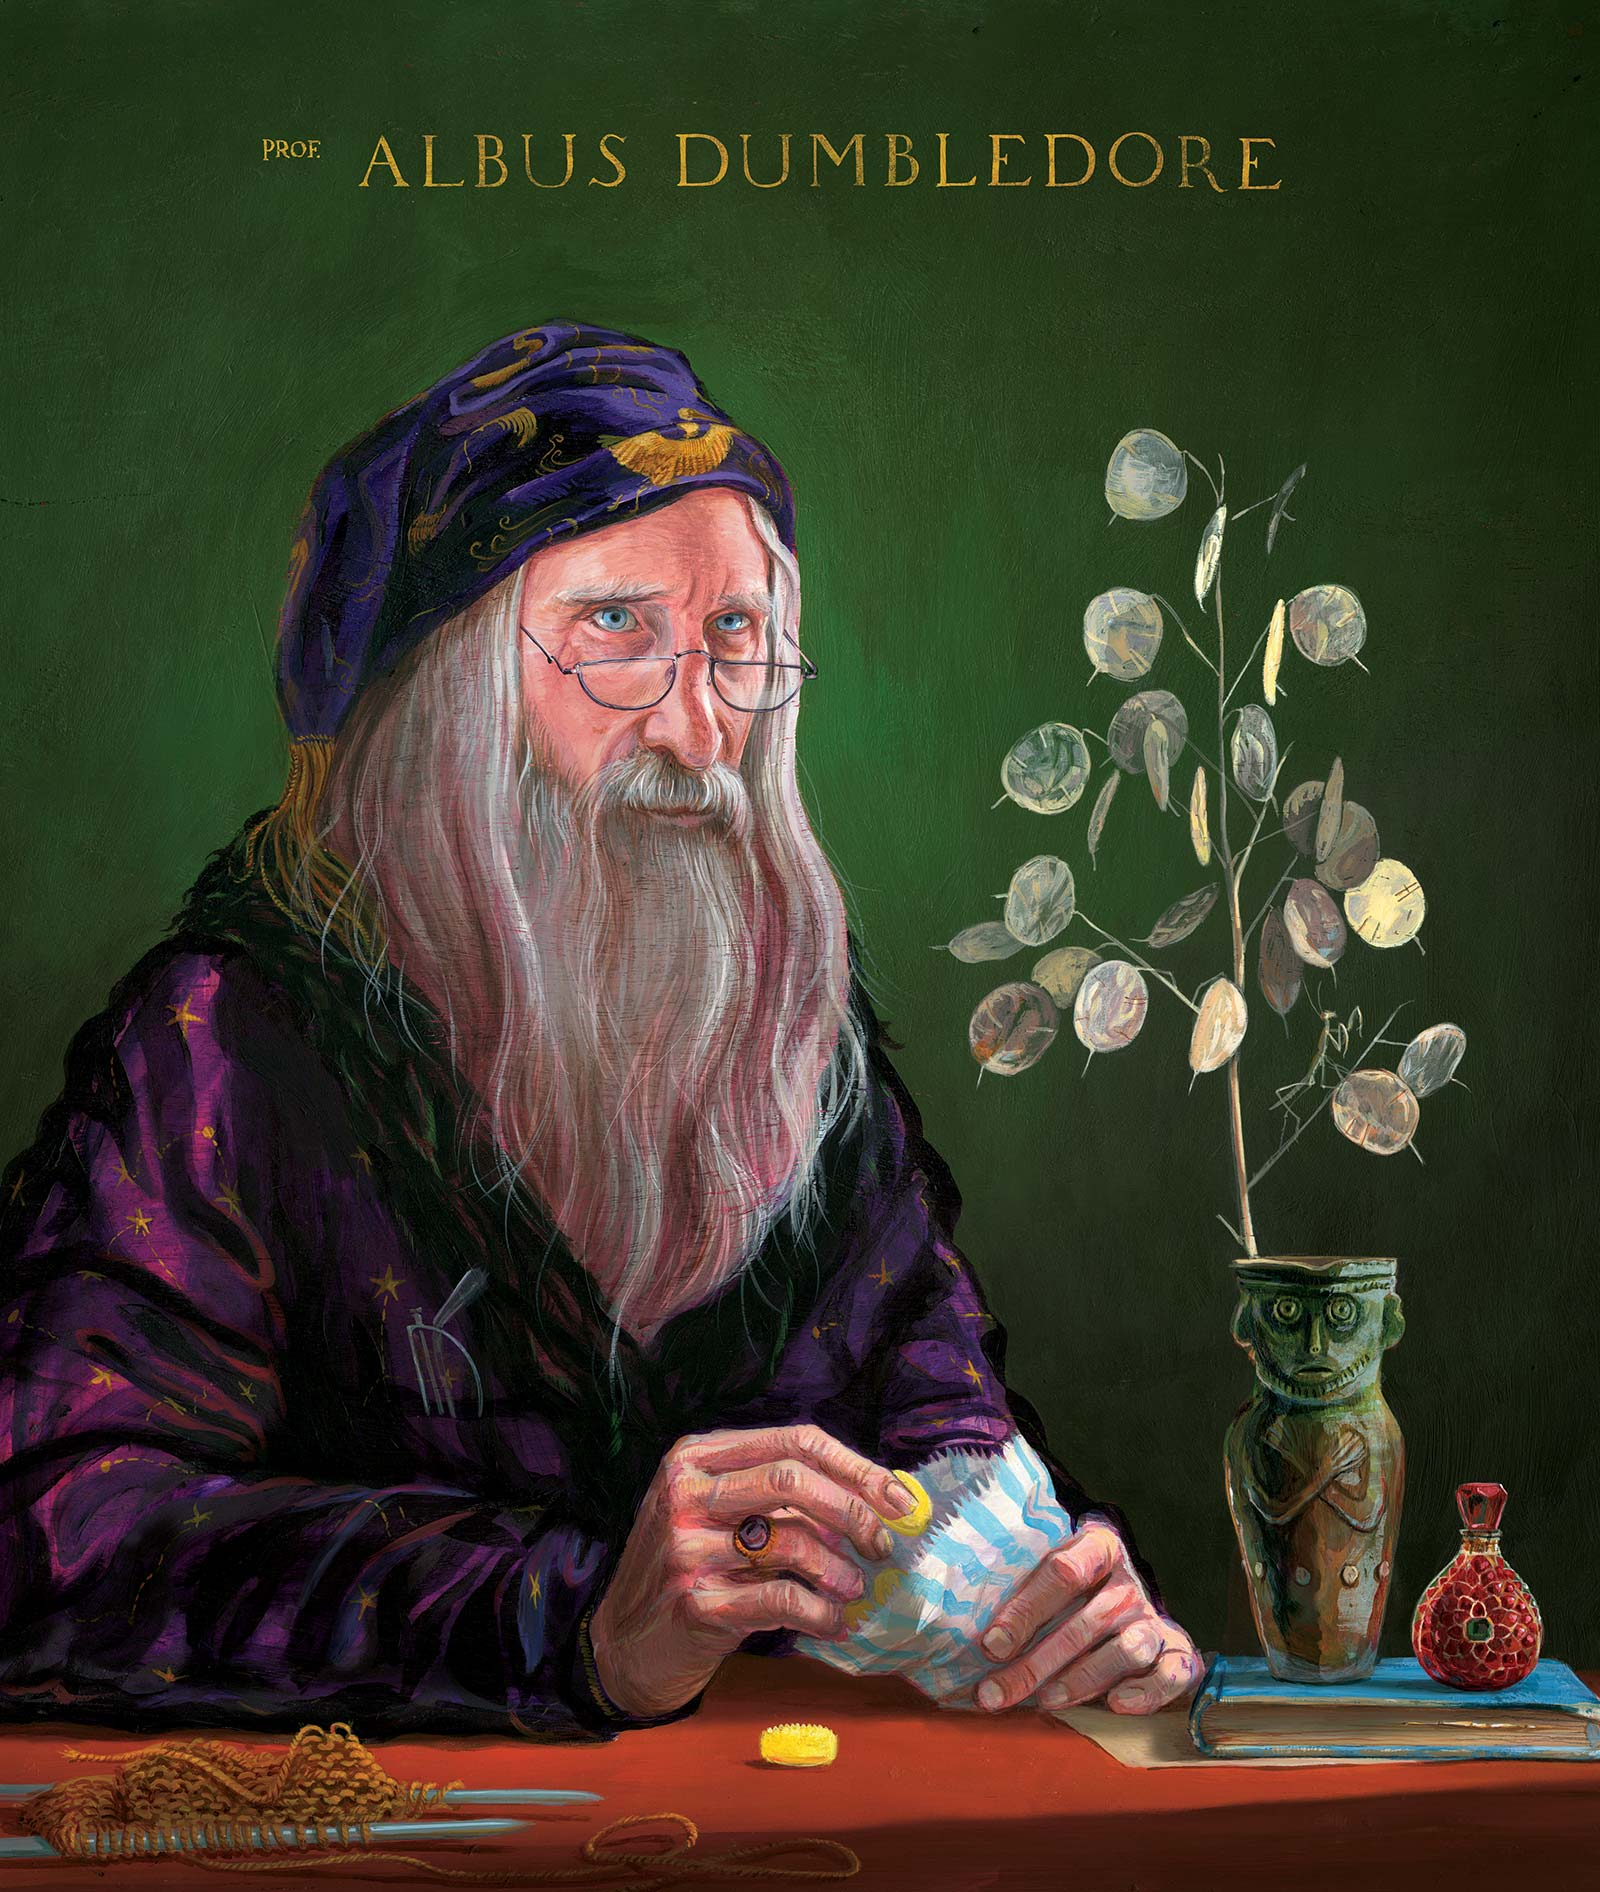 Albus Dumbledore illustrated by Jim Kay